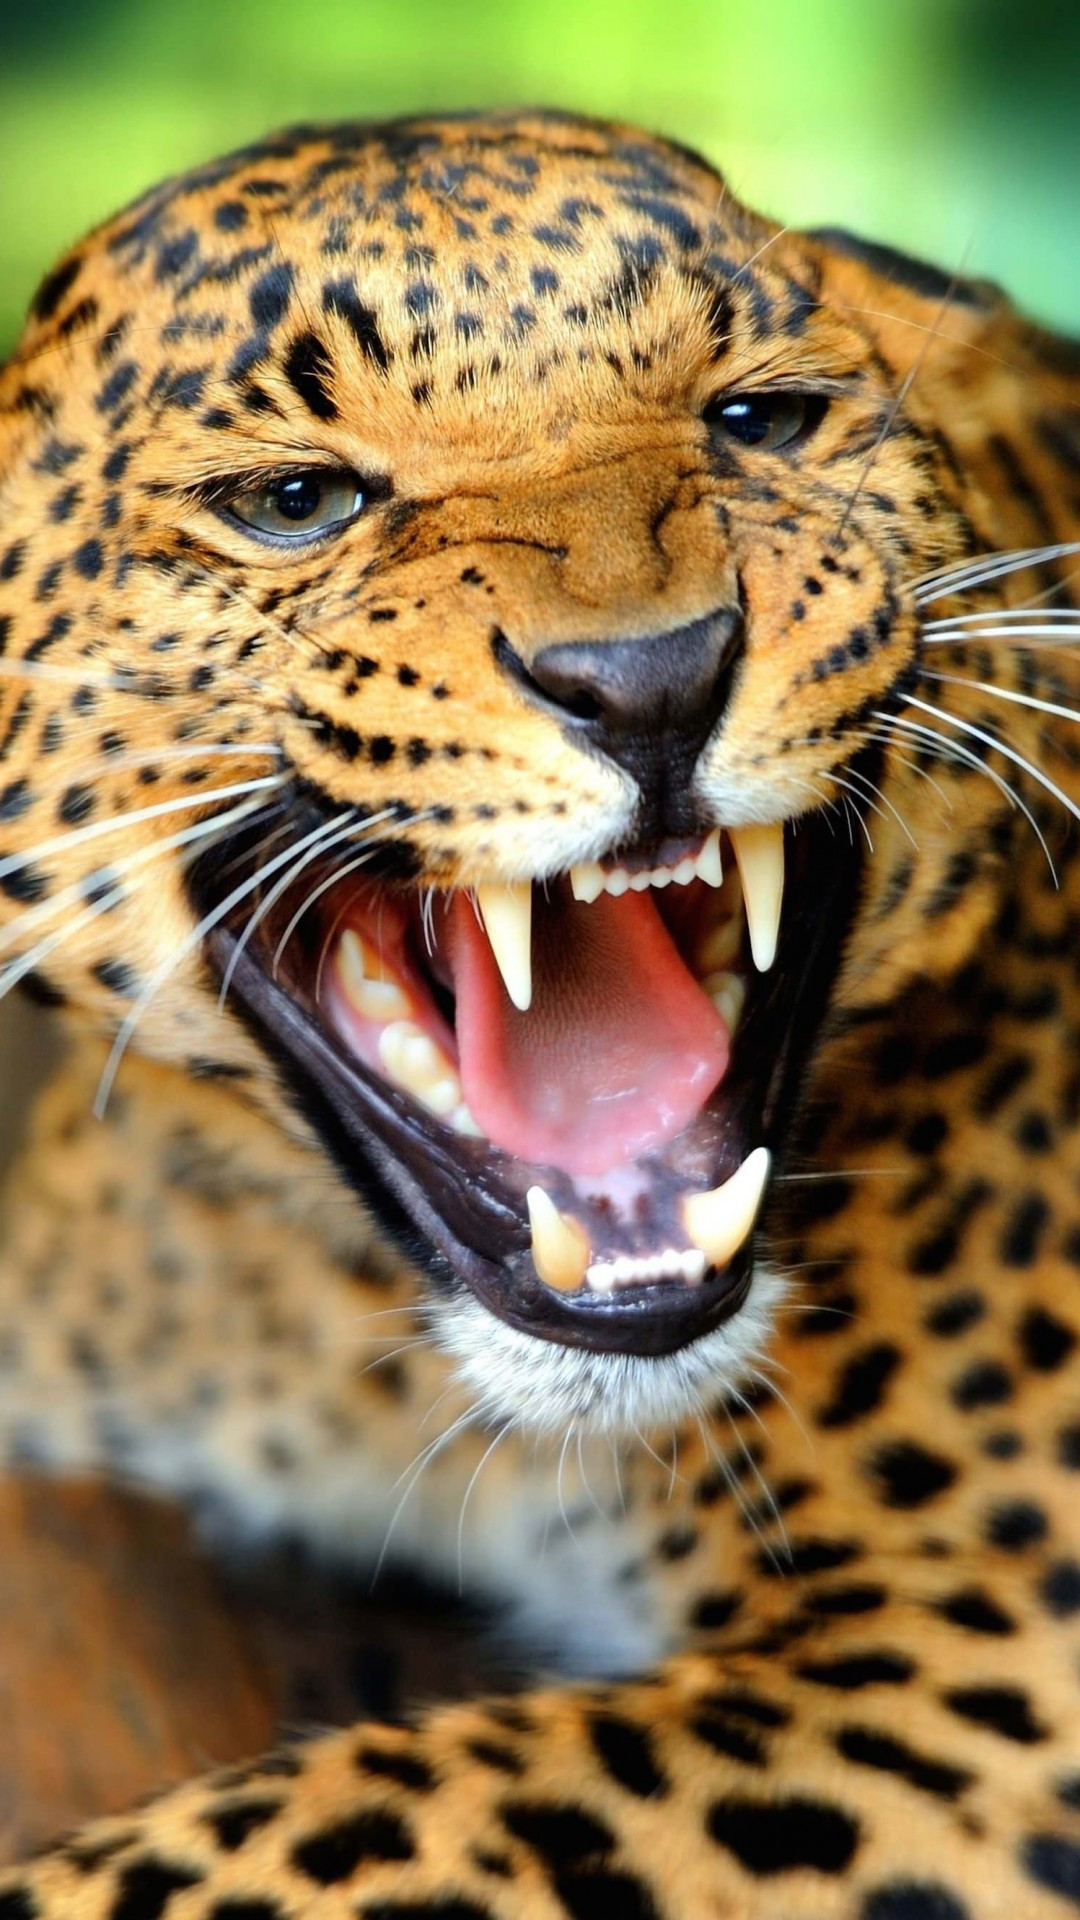 Growling Leopard Wallpaper for SAMSUNG Galaxy S5